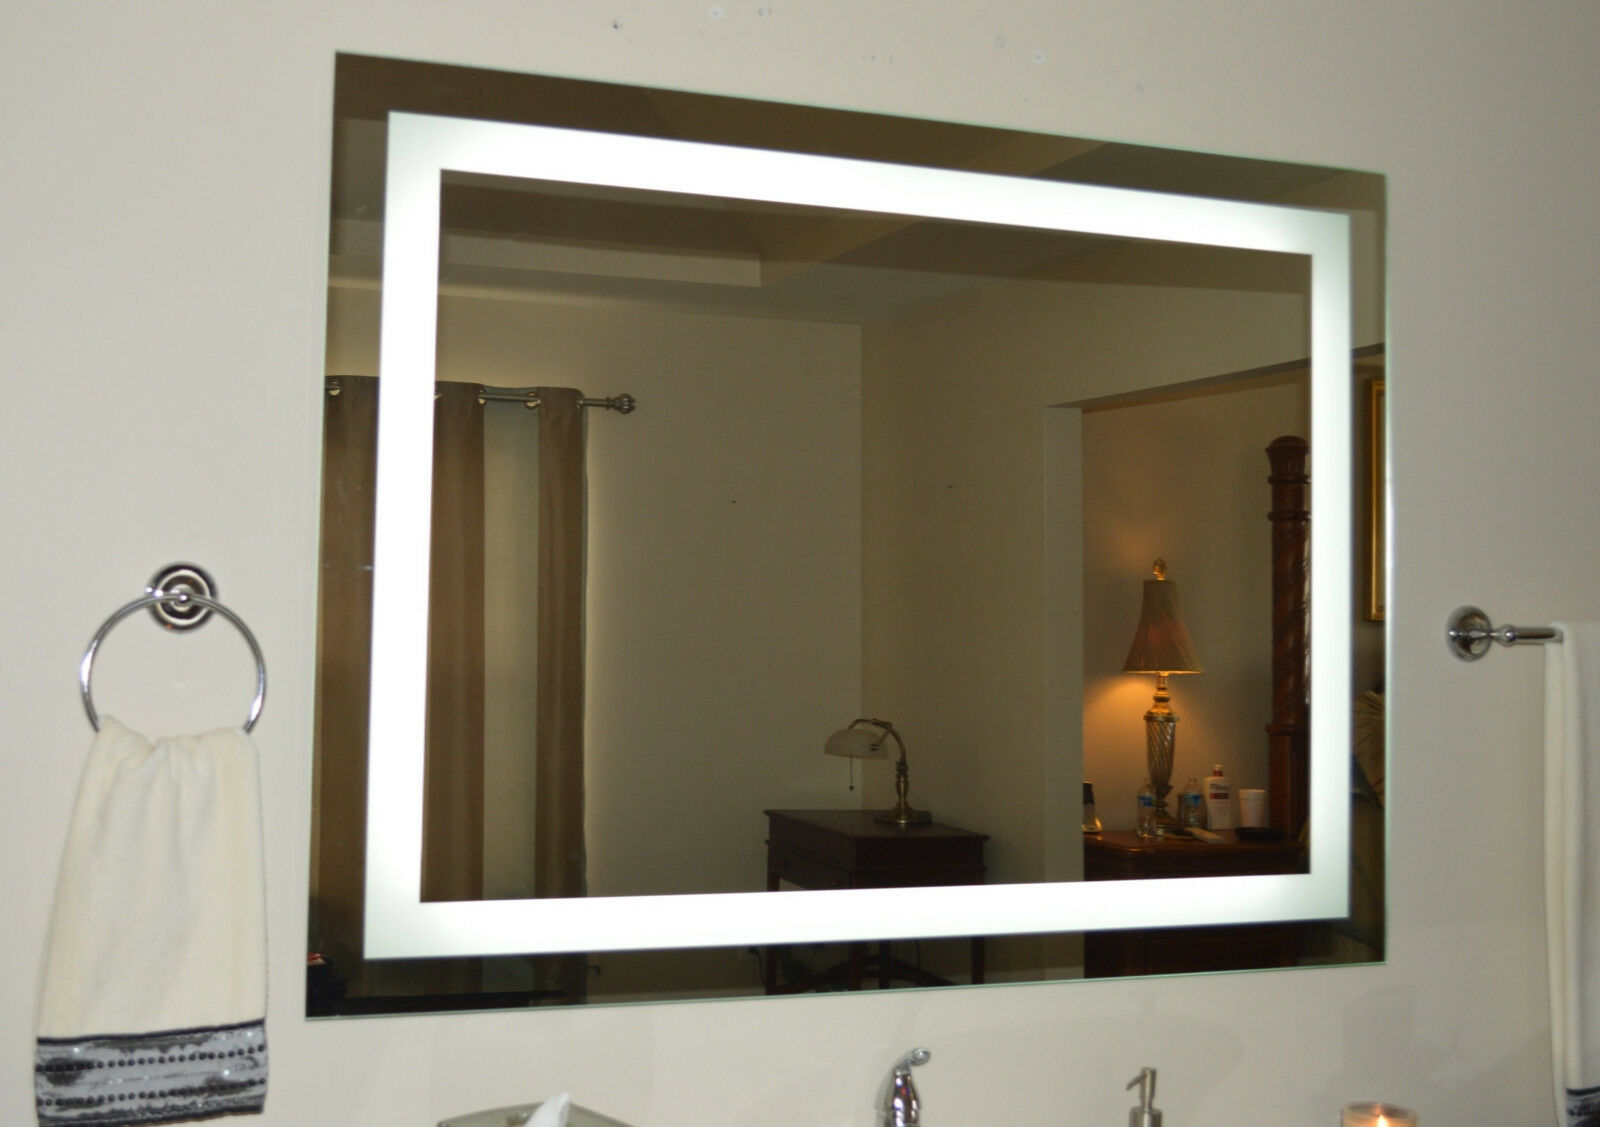 Lighted Bathroom Vanity Mirror LED Wall Mounted Hotel Grade Mam84832 ...